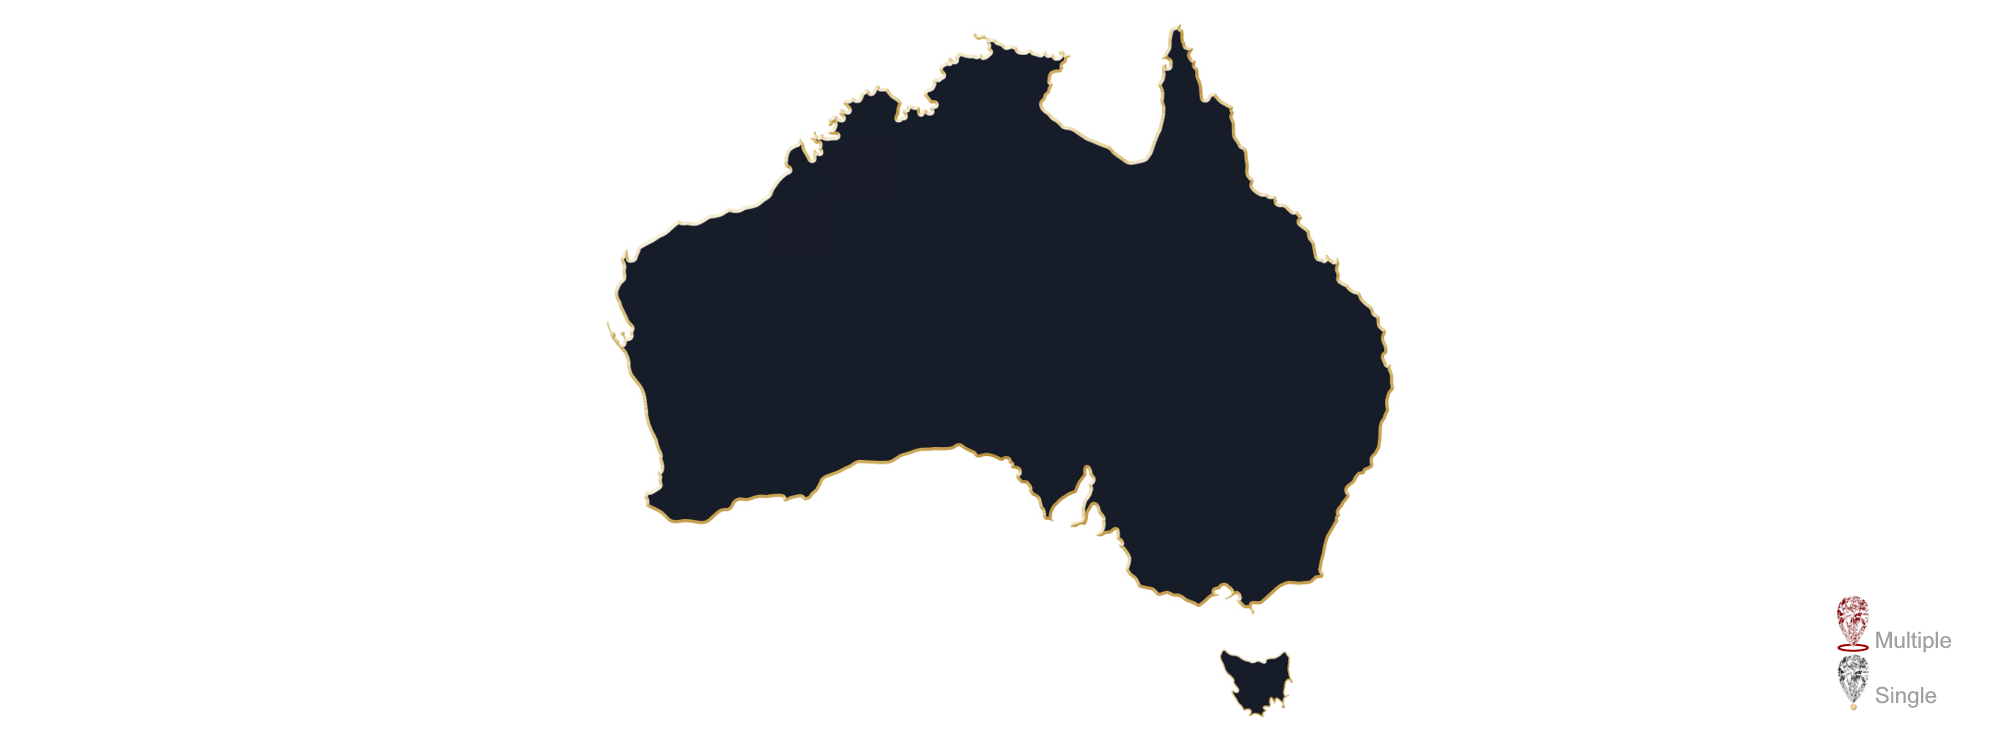 A map showing the location of Australian Jewellery Valuers